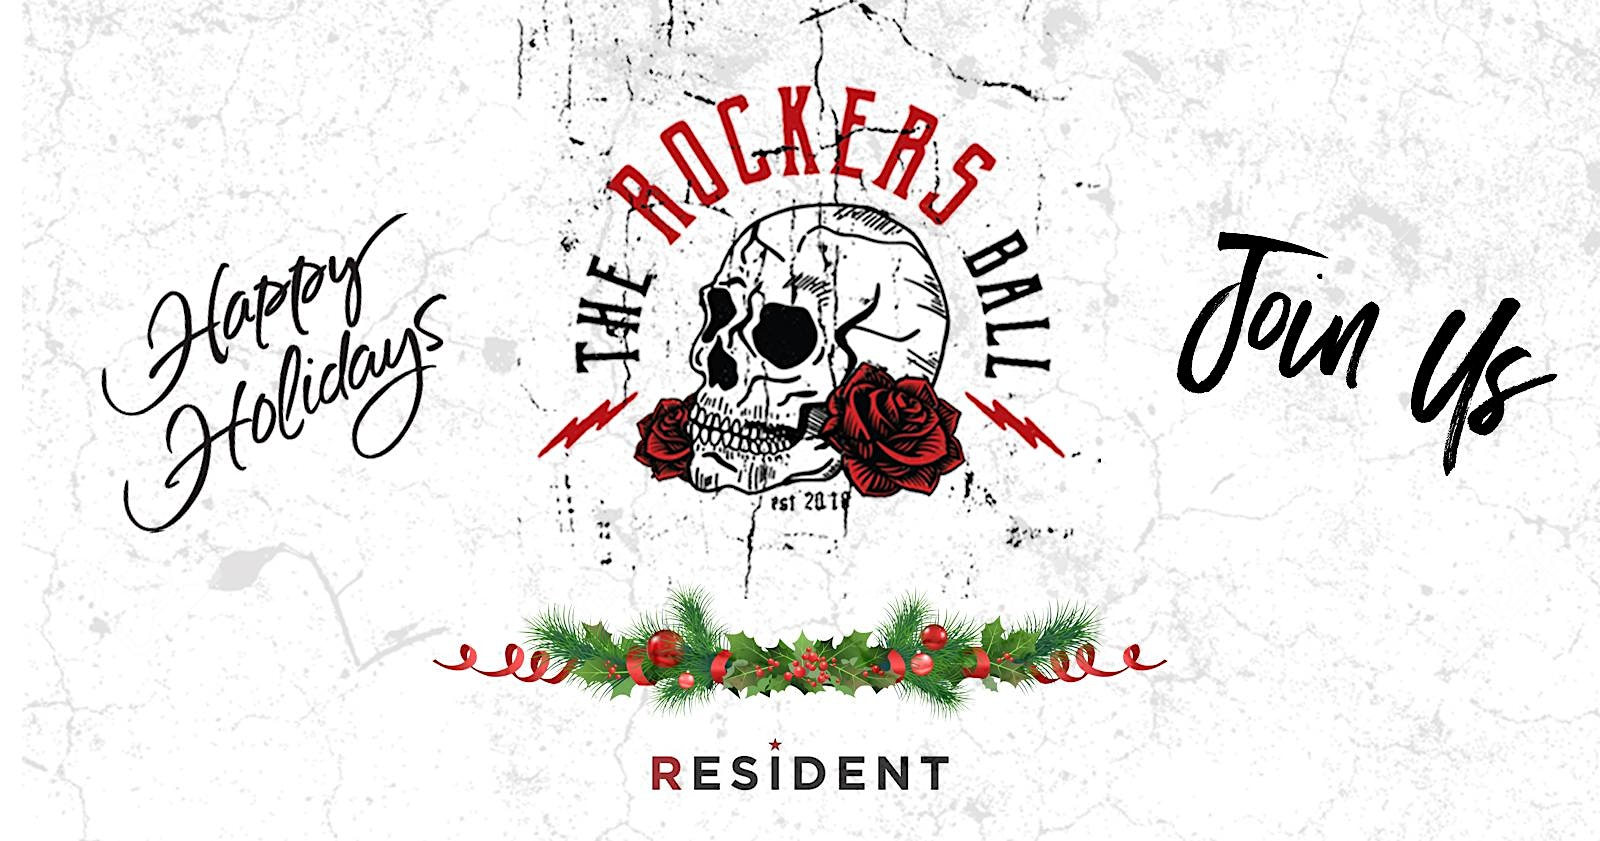 The Rockers Ball: Holiday Bash